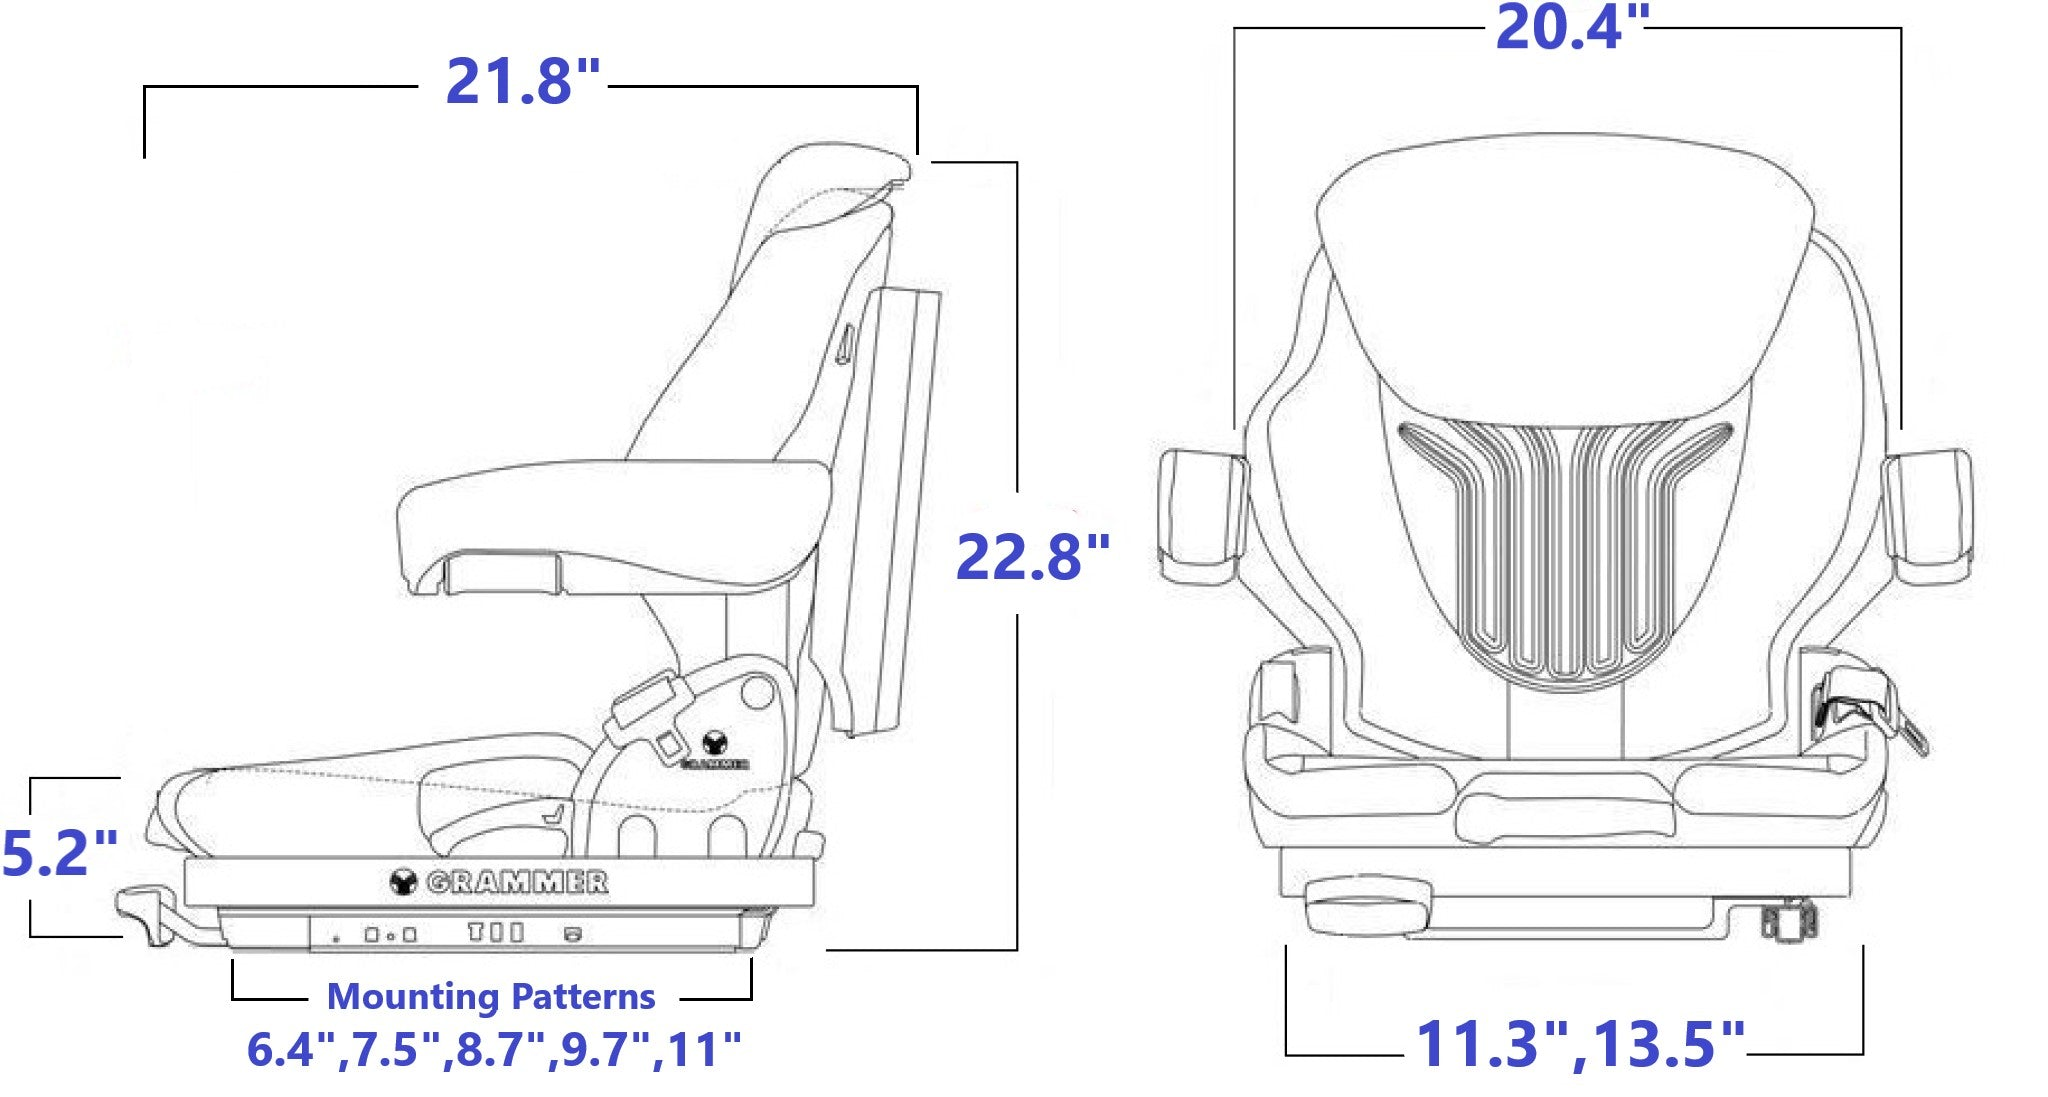 Grammer MSG65/531 Technical Drawing